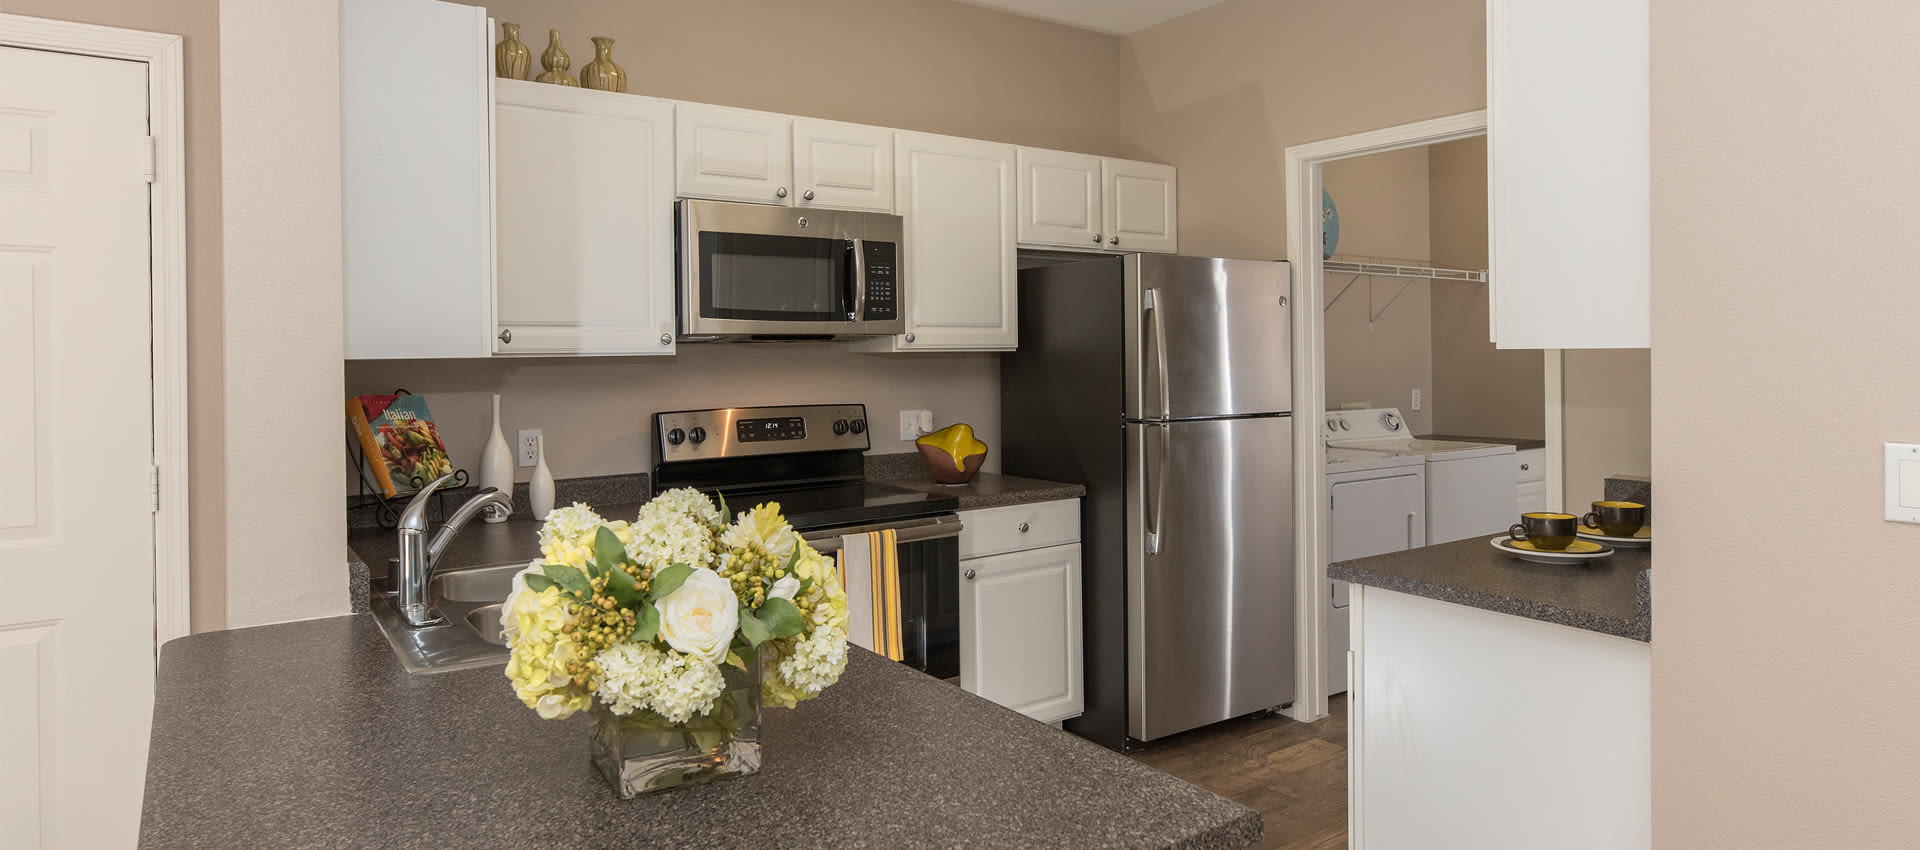 Our apartments in Antioch, California have a natrually well-lit kitchen